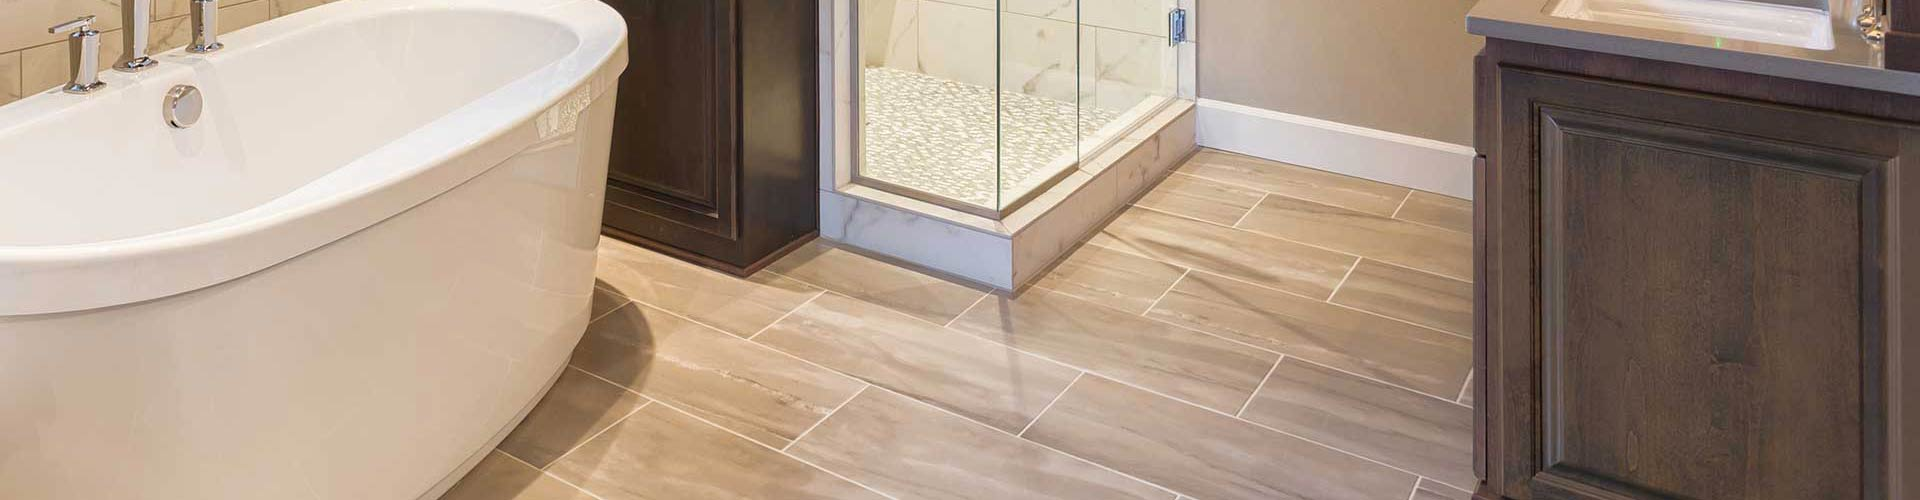 tile and grout floor in bathroom